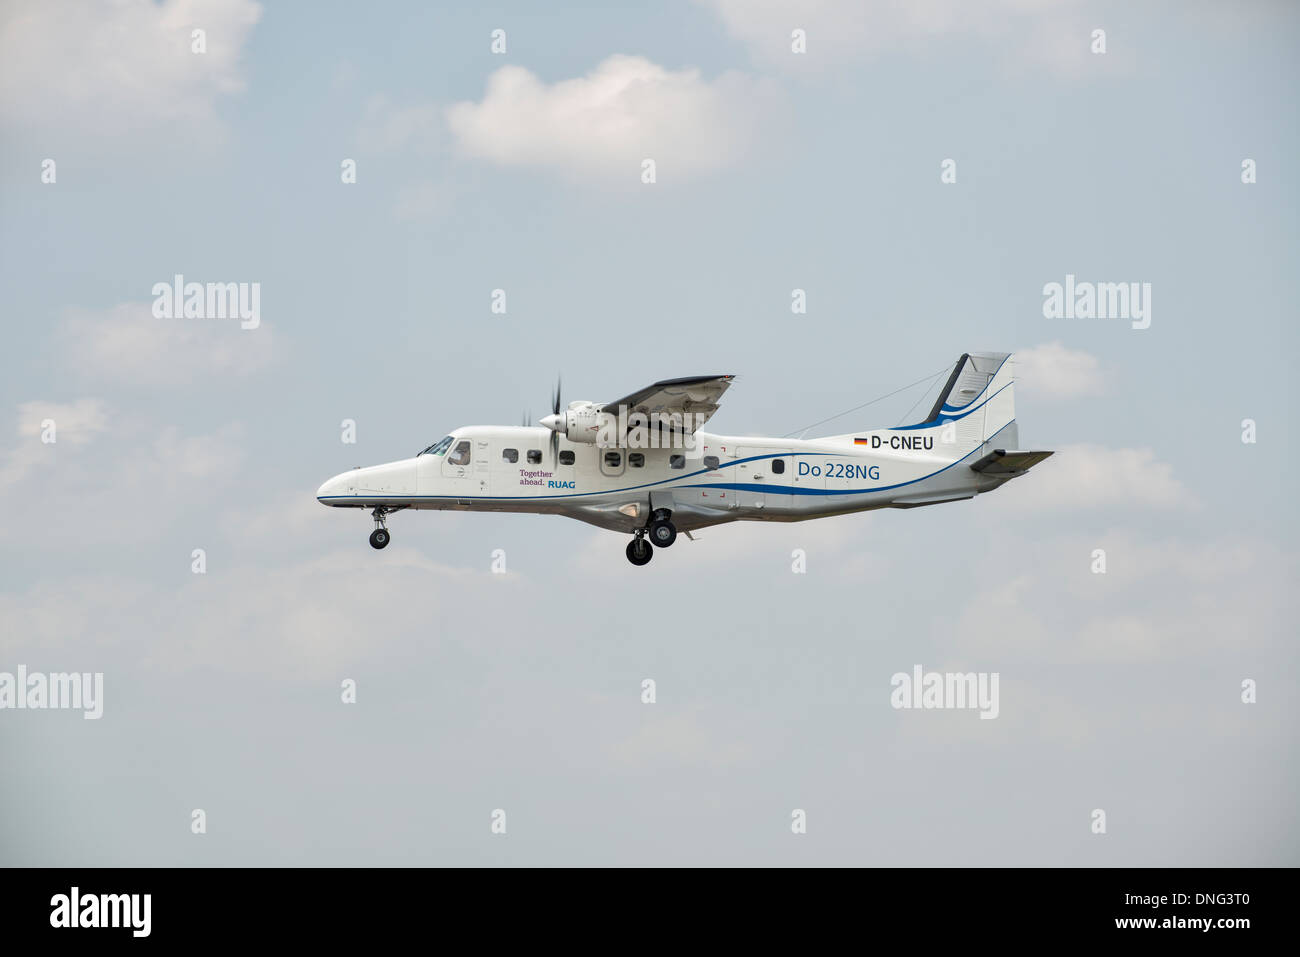 A Dornier 228 from the Ruag organization taxis arriving at RAF Fairford  for the 2013 Royal International Air Tattoo. - Stock Image